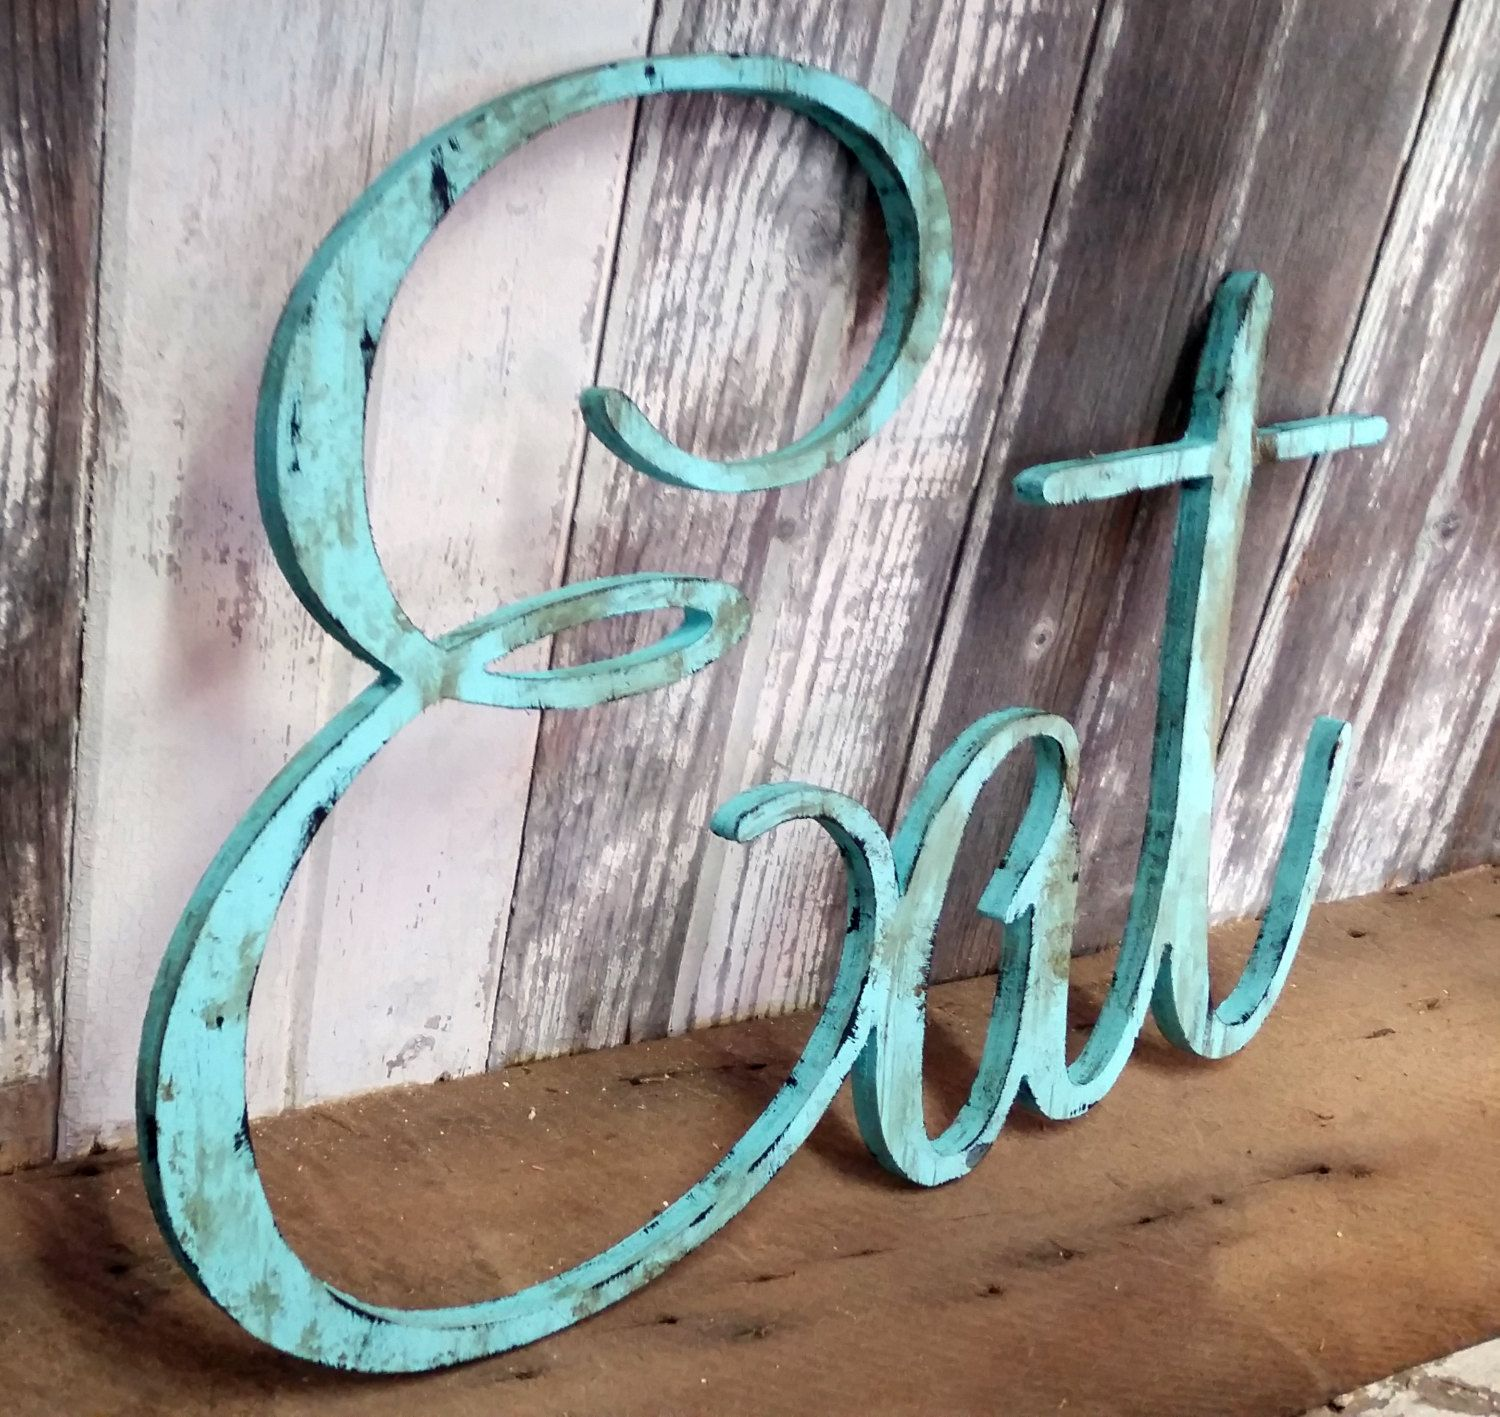 Rustic EAT Sign Shabby Chic Aqua Wall Hanging Home Decor Photo Prop Cottage Teal Farmhouse Primitive Kitchen DecorationsDining Room